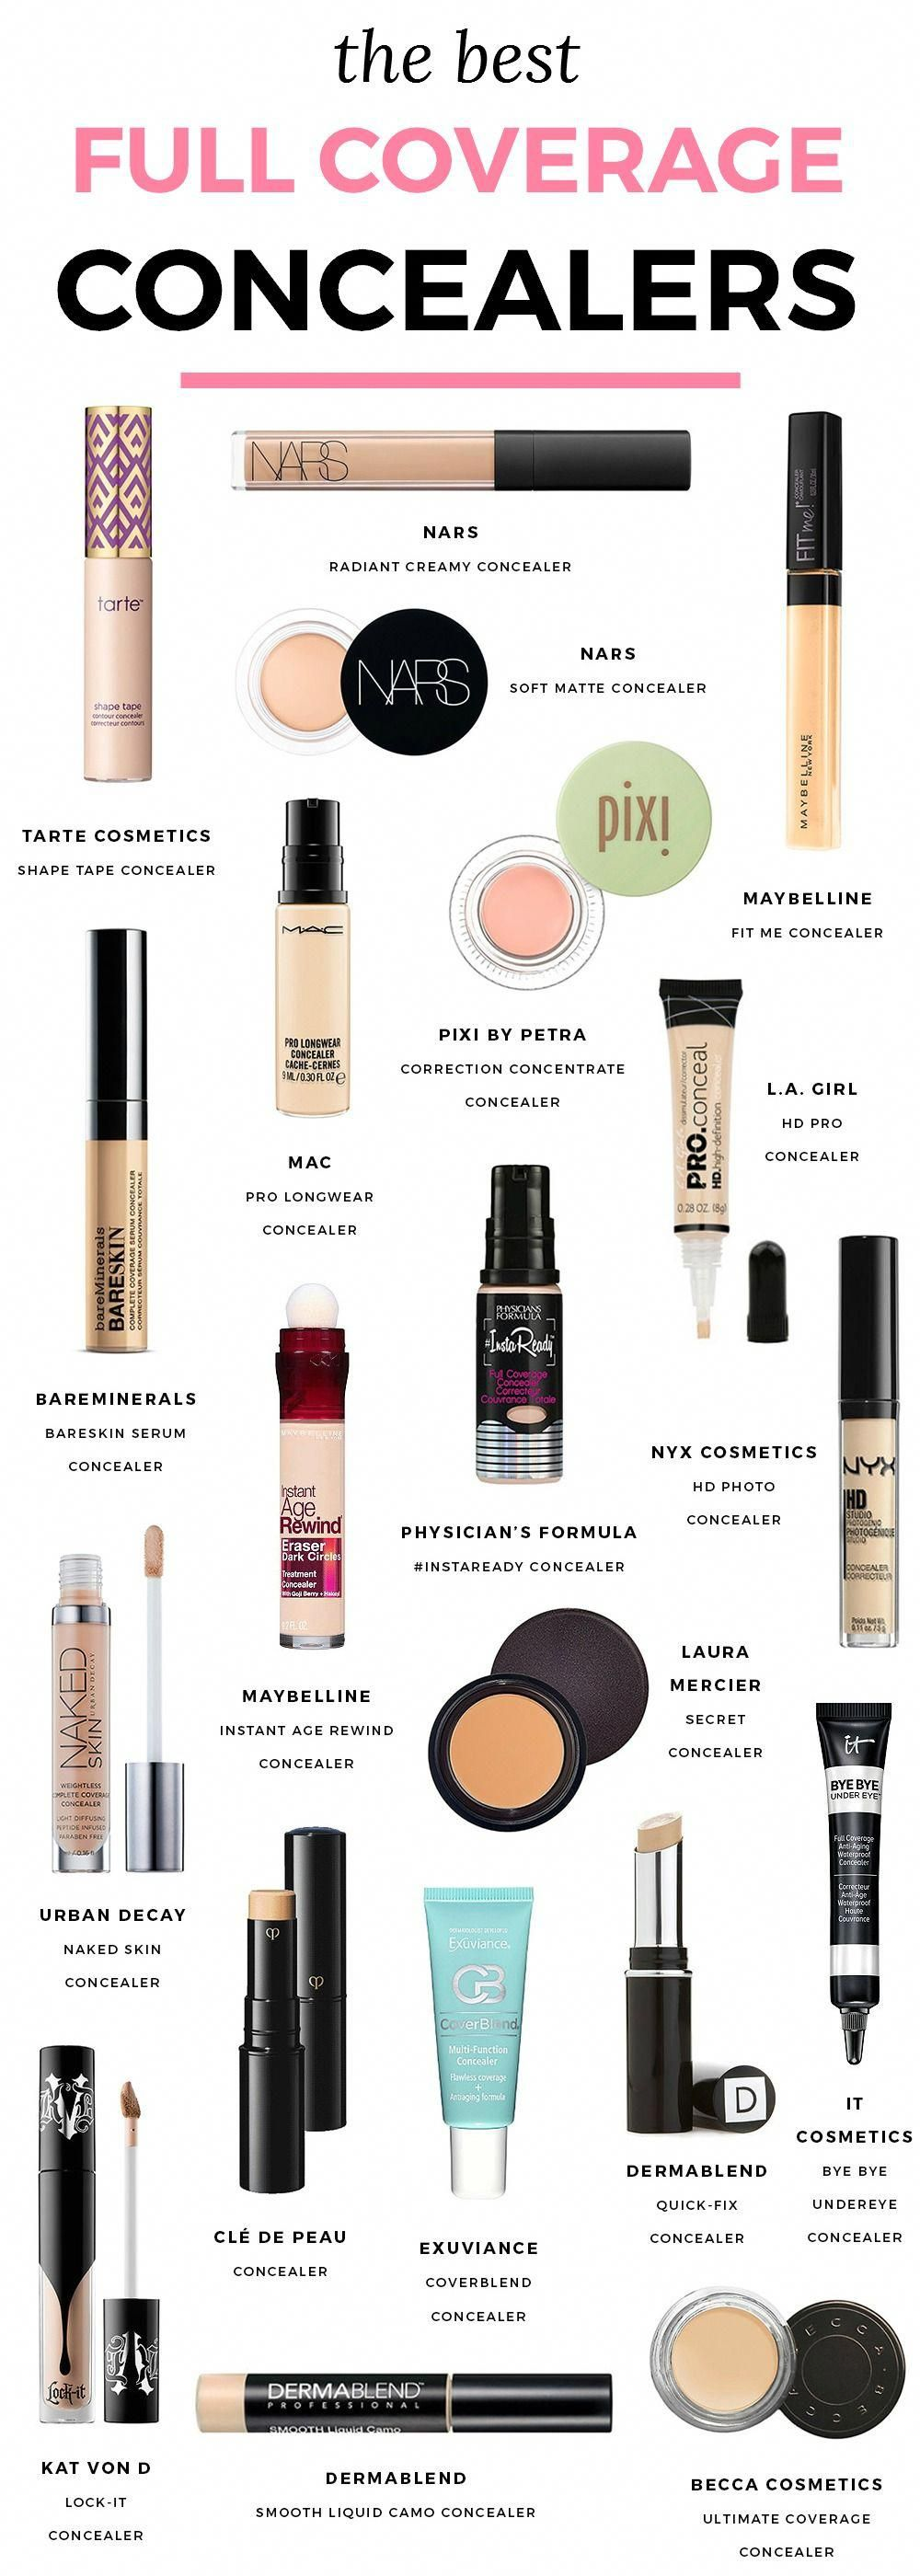 Pin by iHuda on Produits à tester in 2020 Makeup hacks